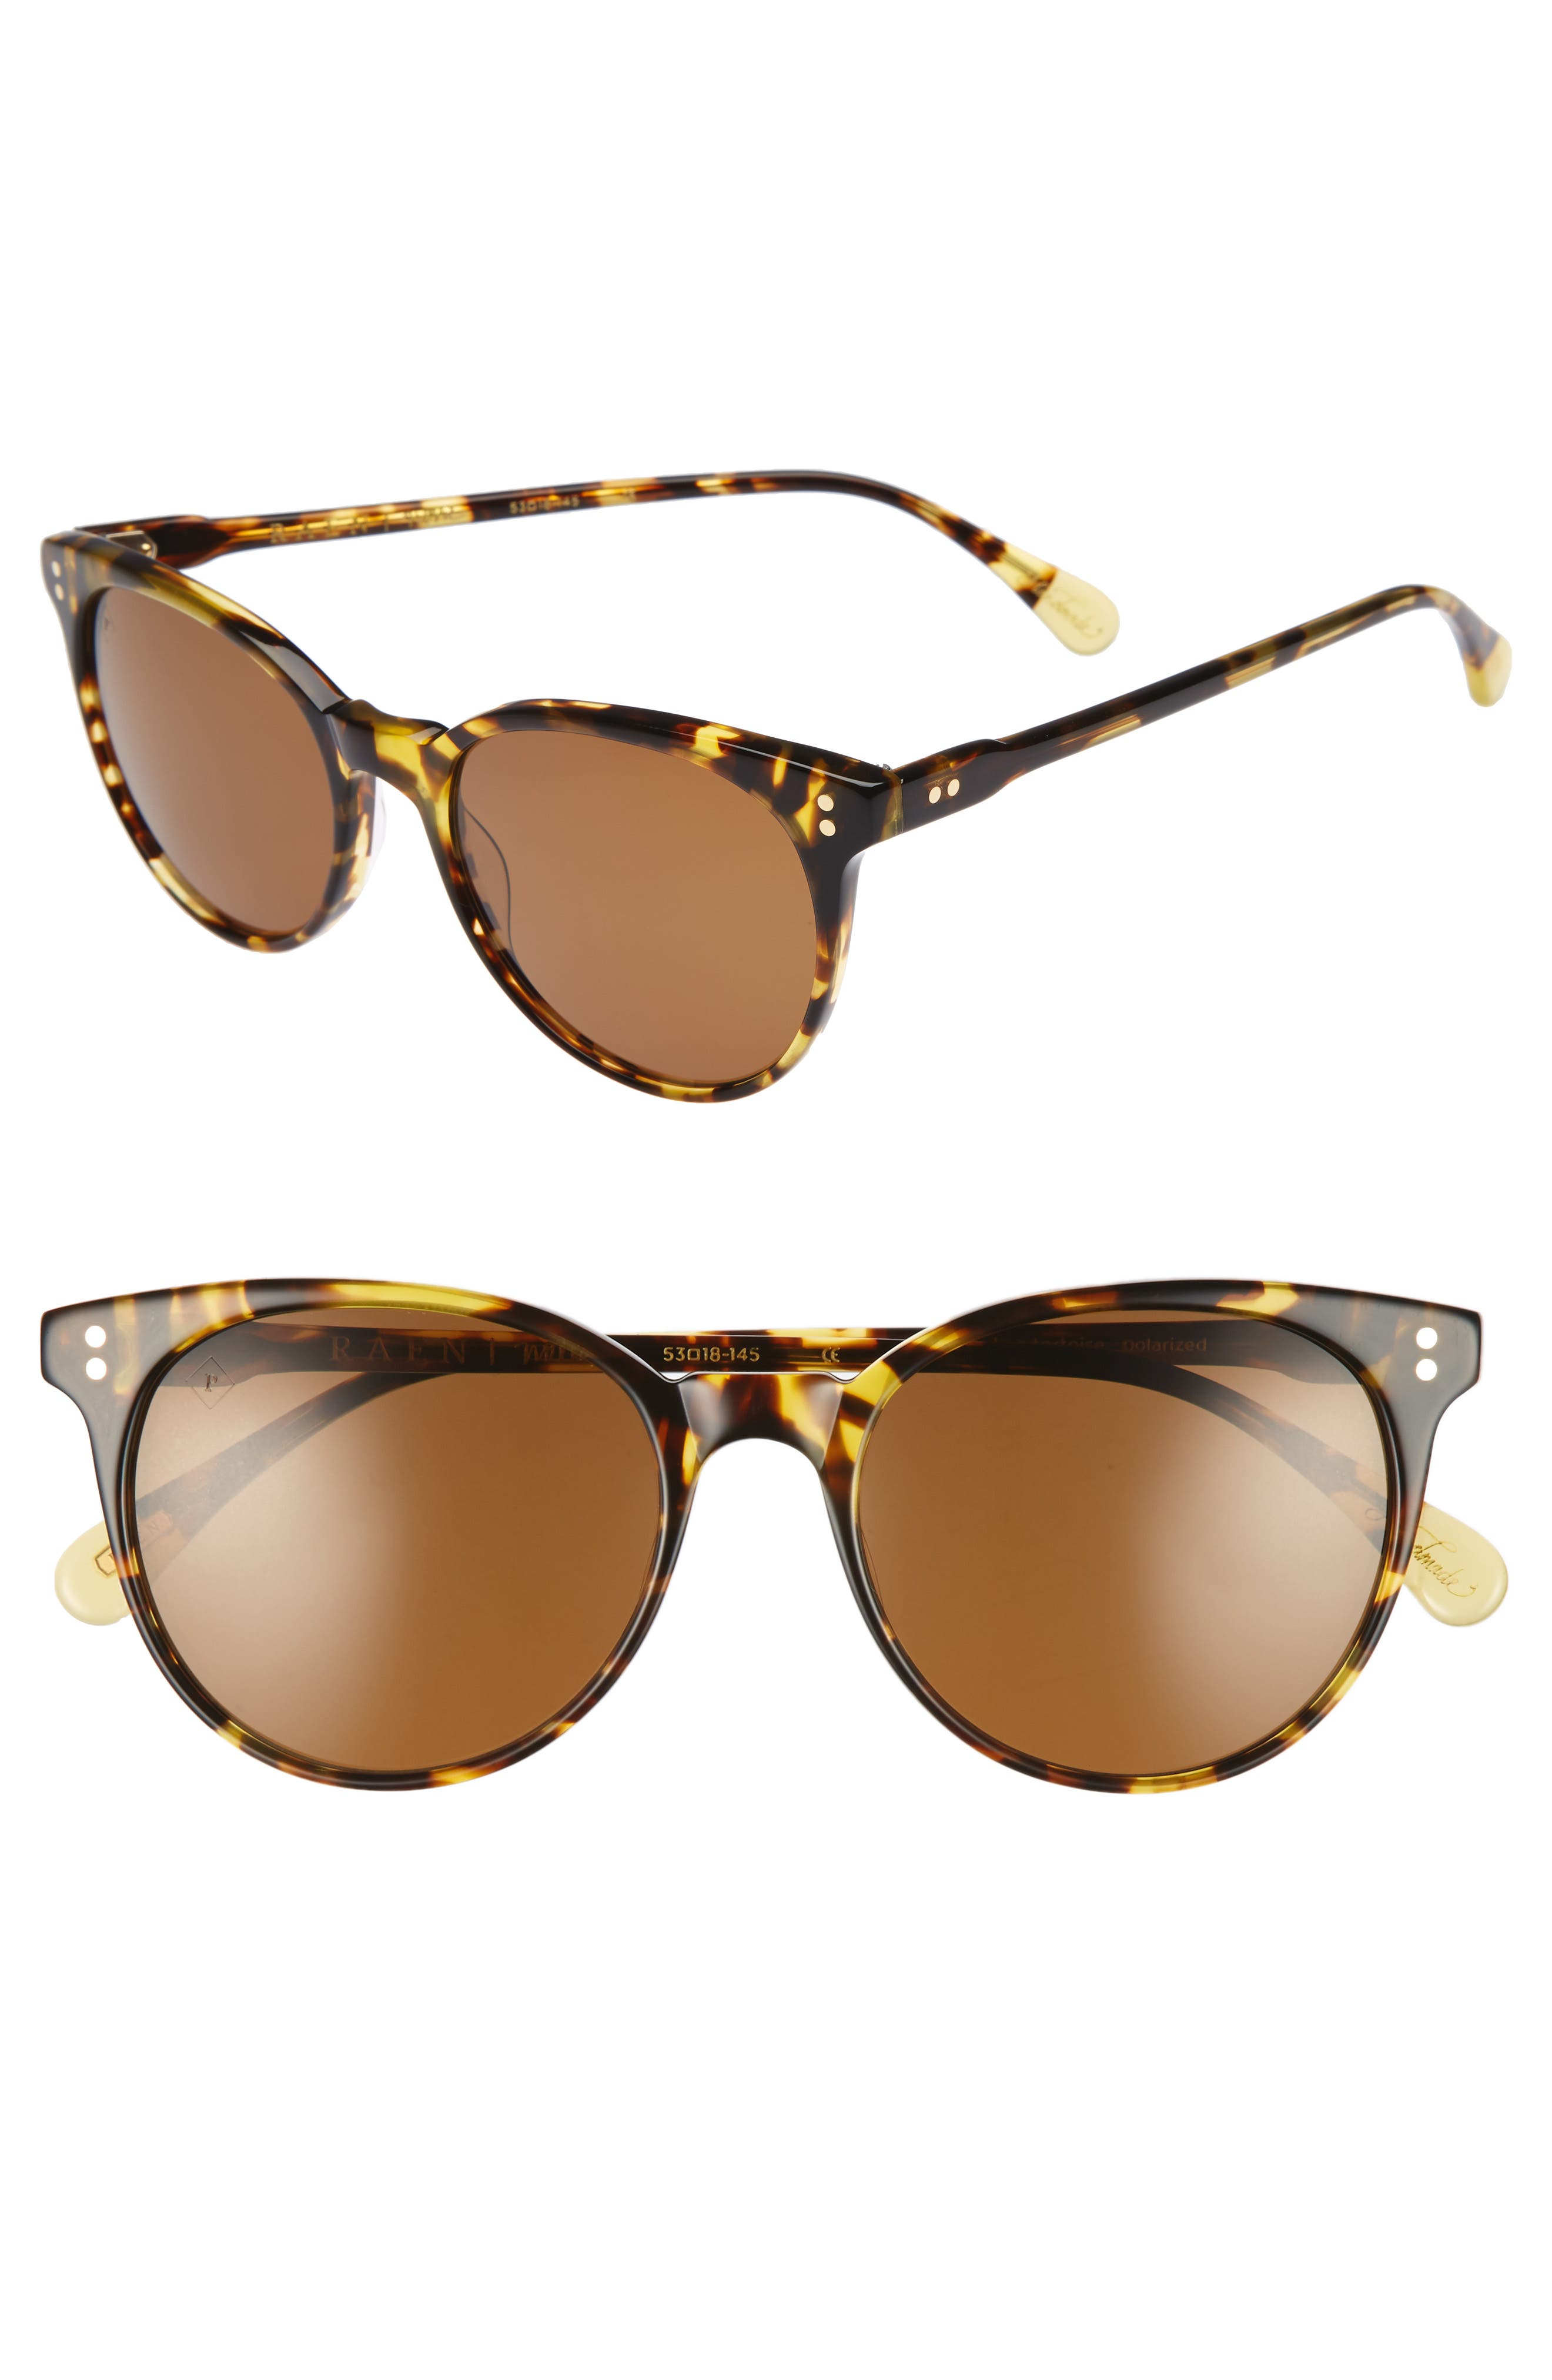 Norie 53mm Sunglasses,                         Main,                         color, 205